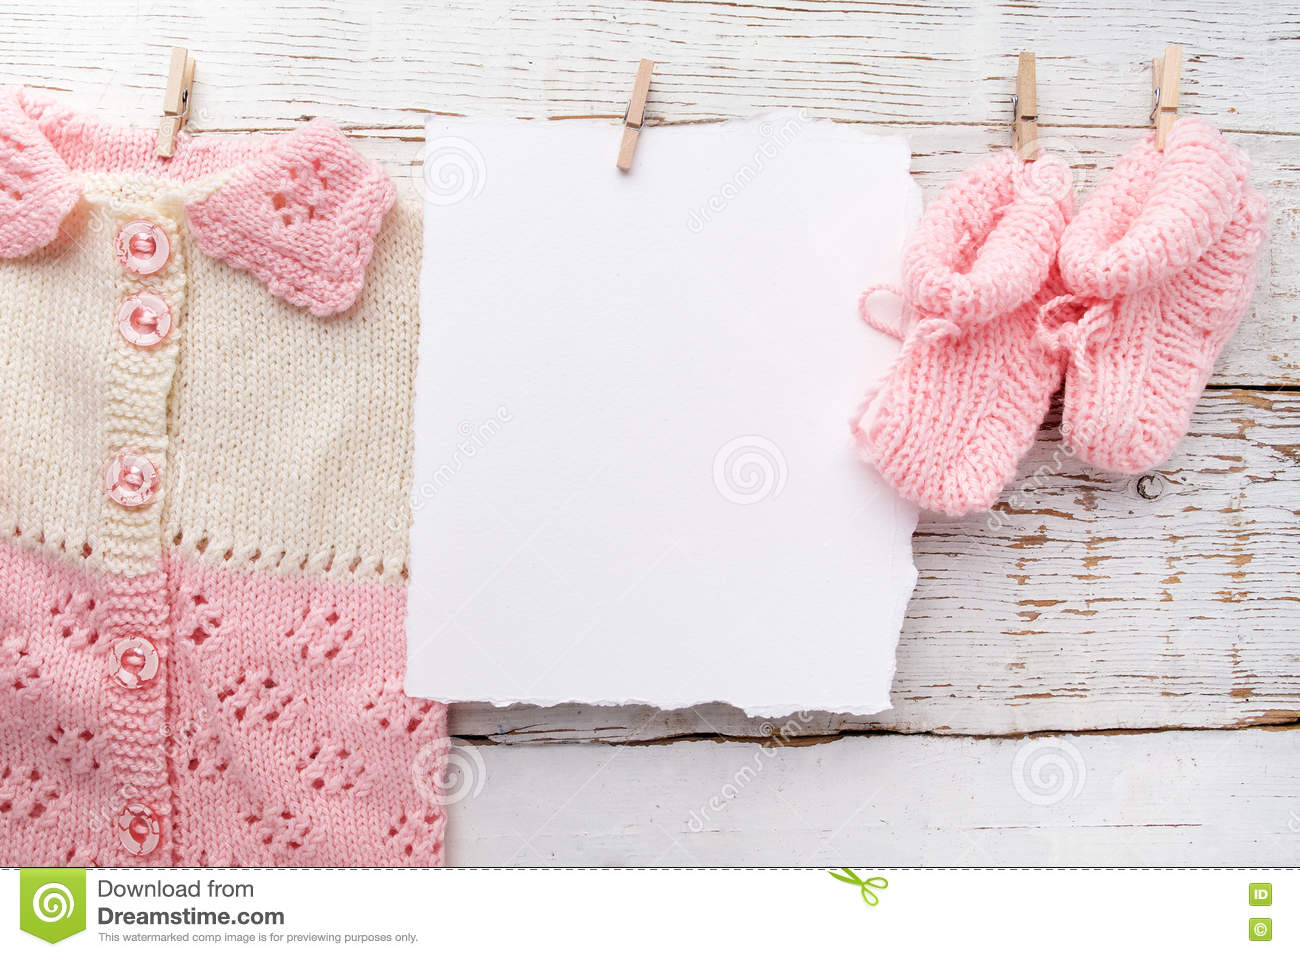 c5d3555a74e4 Baby girl clothes with blank card on white wooden background. Flat lay.  Owerhad view